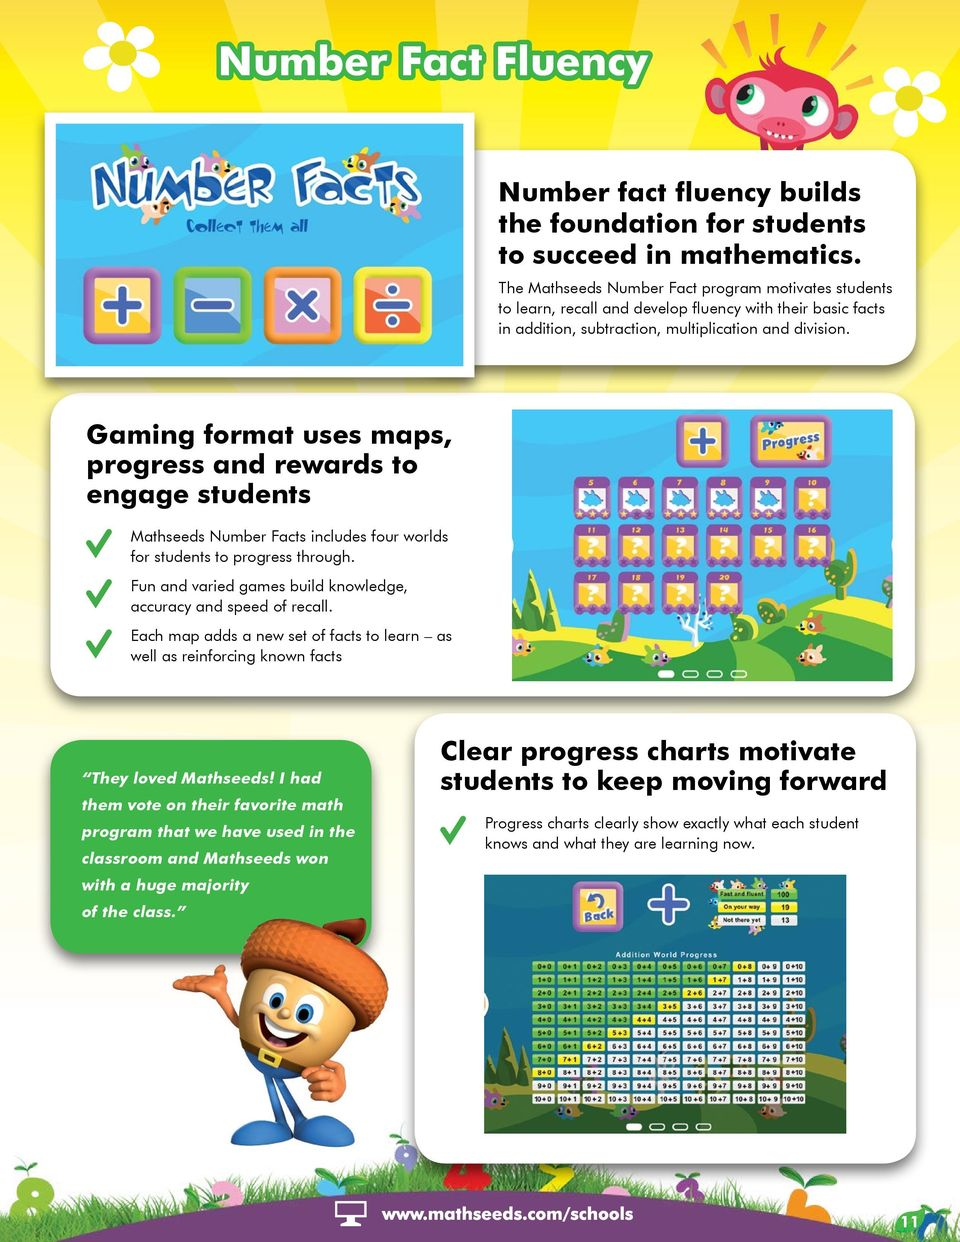 Gaming format uses maps, progress and rewards to engage students Mathseeds Number Facts includes four worlds for students to progress through.